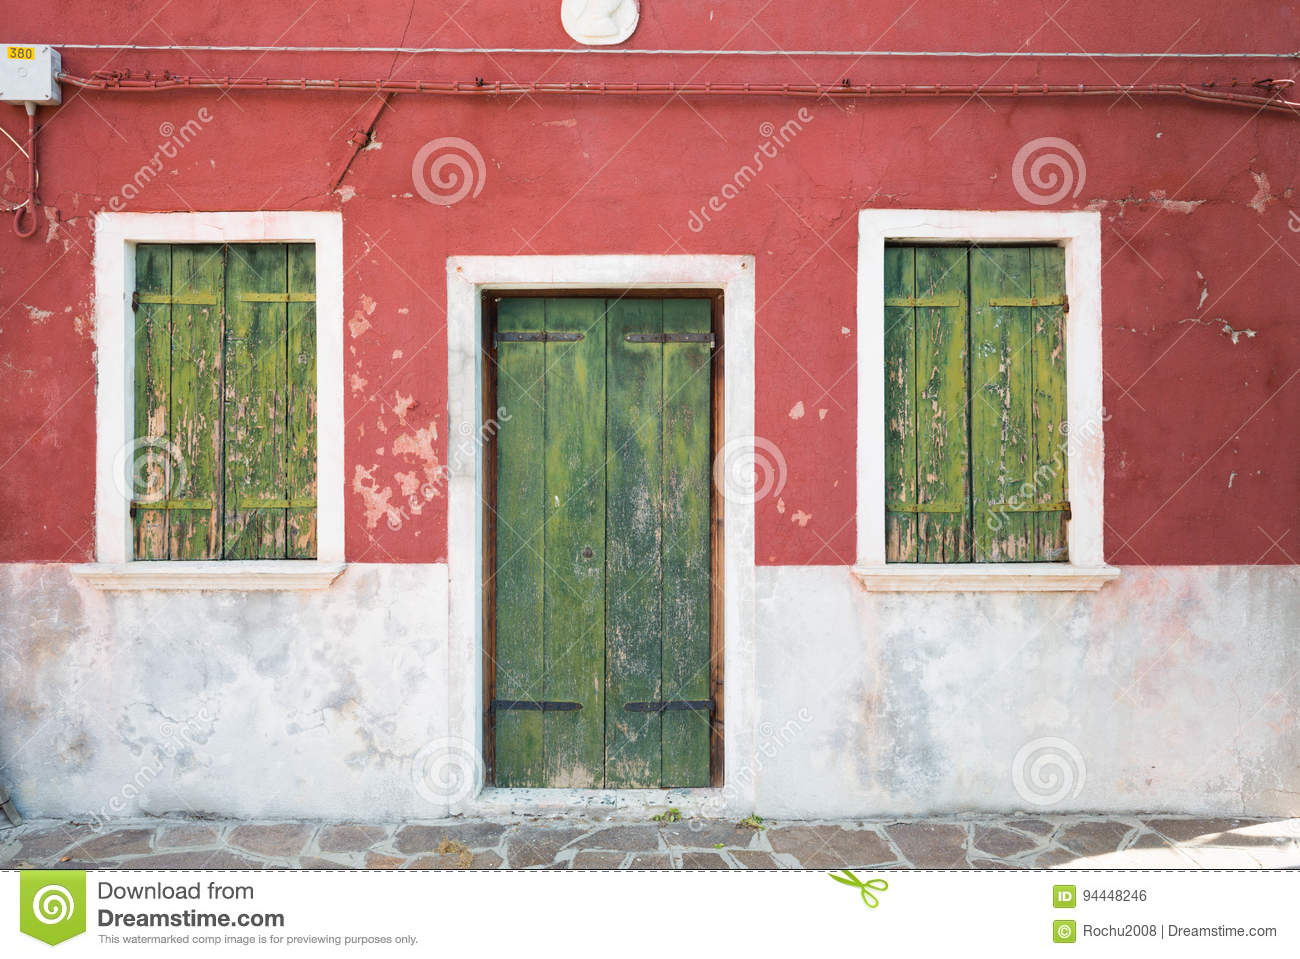 Colourful Wall Of Picturesque House Stock Photo - Image of shutters ...